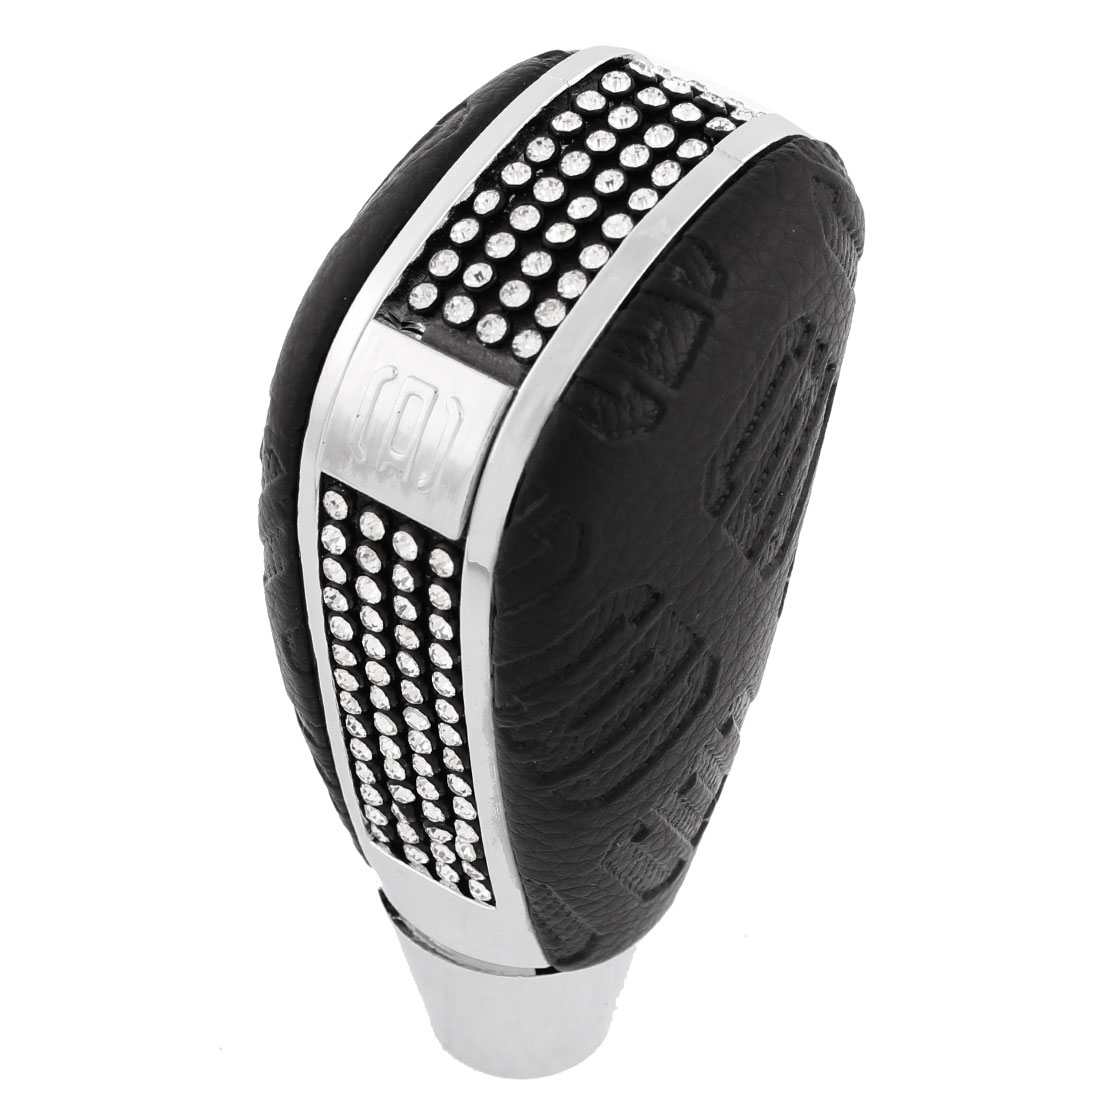 15mm Mounted Dia Black Silver Tone Rhinestone Decor Car Gear Shift Knob Cover